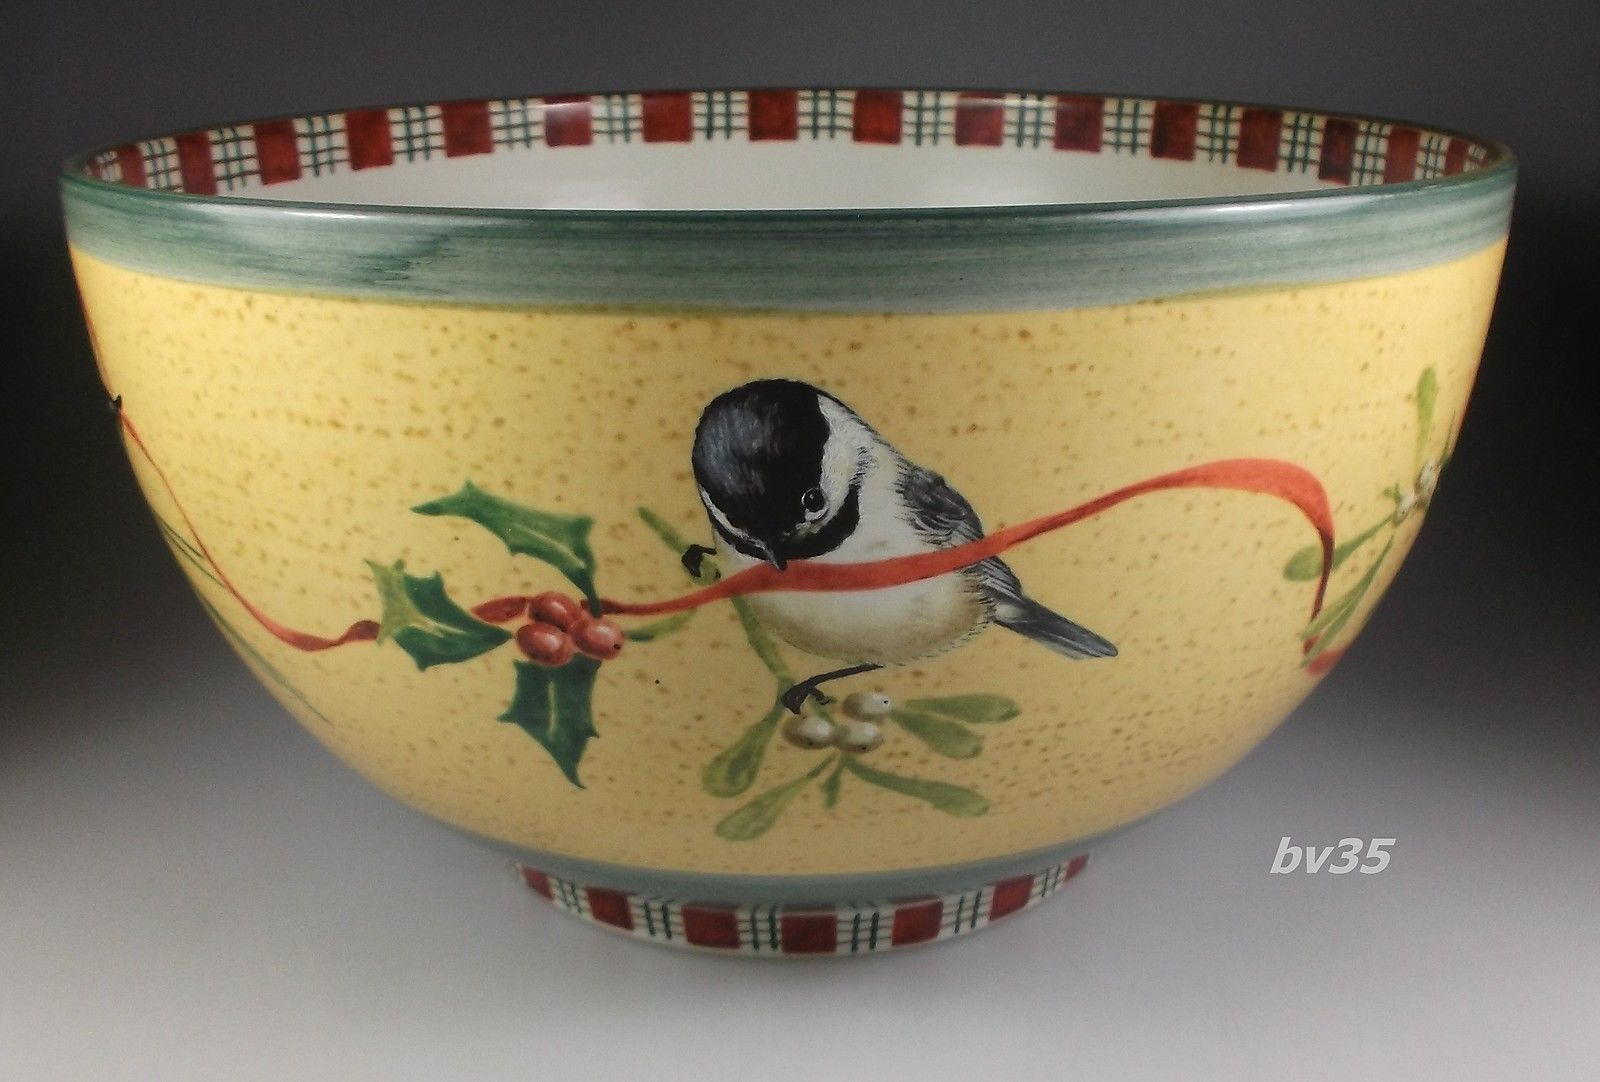 Lenox winter greetings everyday stoneware by catherine mcclung l lenox winter greetings everyday stoneware by catherine mcclung large 1125 salad bowl m4hsunfo